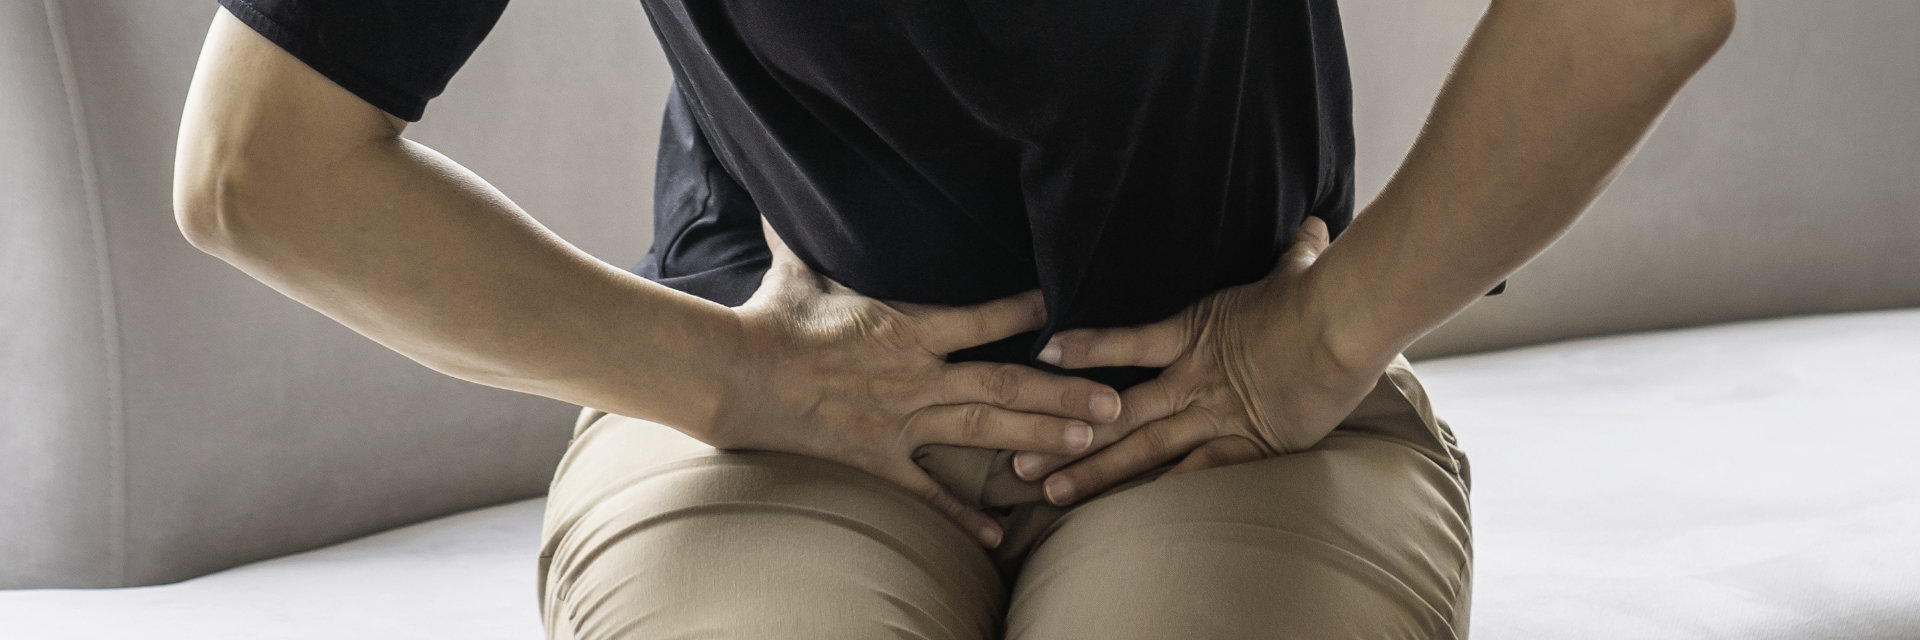 pain in the groin